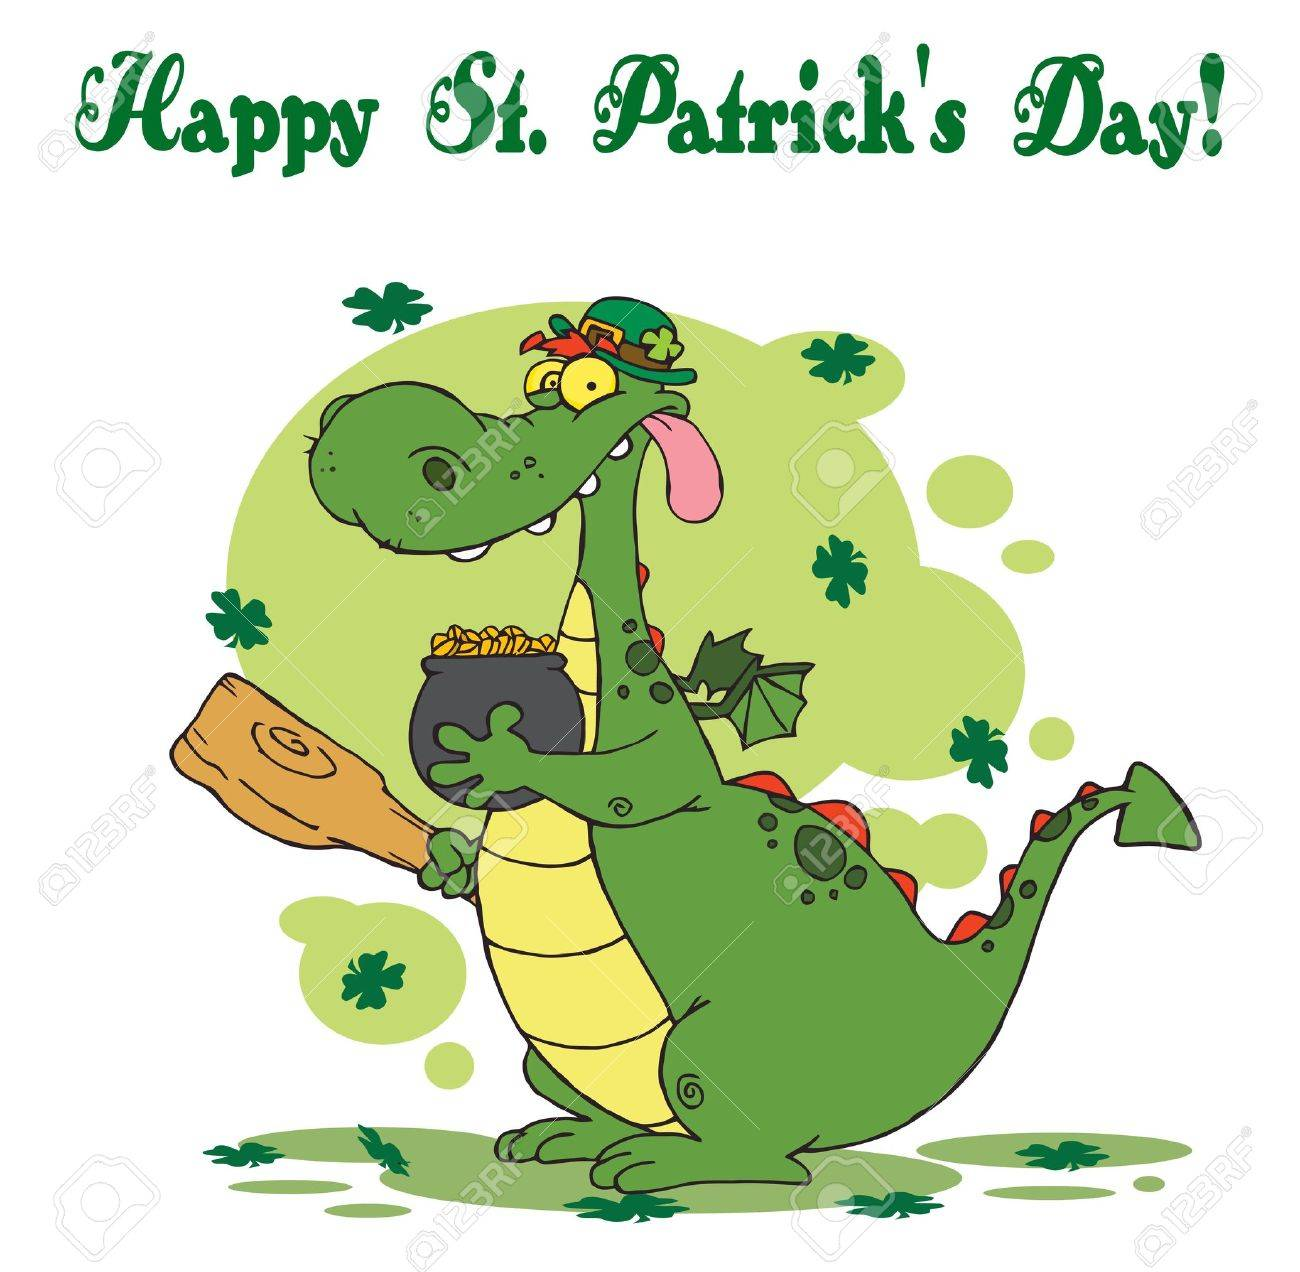 Happy St Patrick's Day Greeting Of A Leprechaun Dragon With  Gold Stock Vector - 6906795